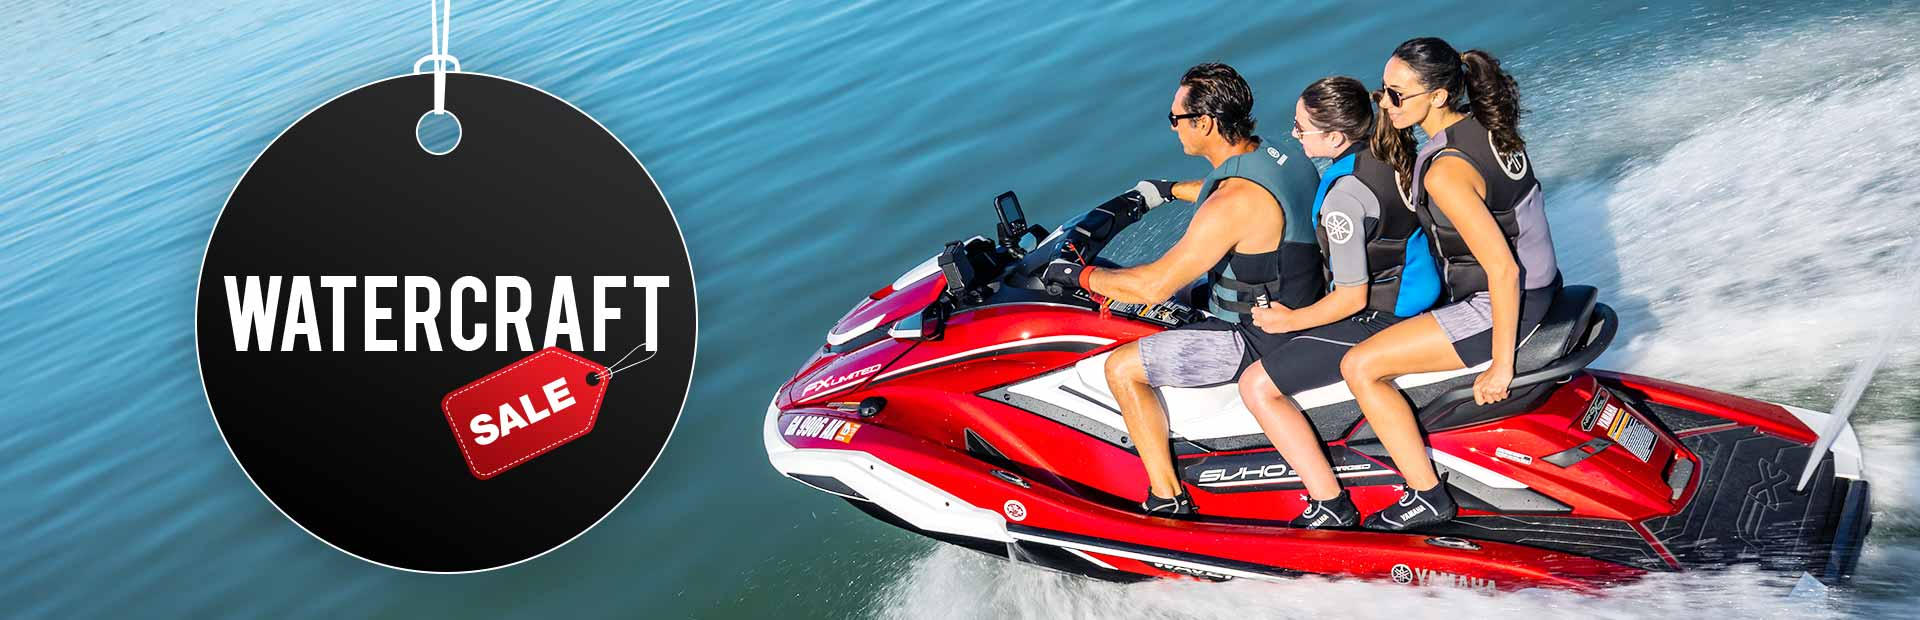 Watercraft Sale